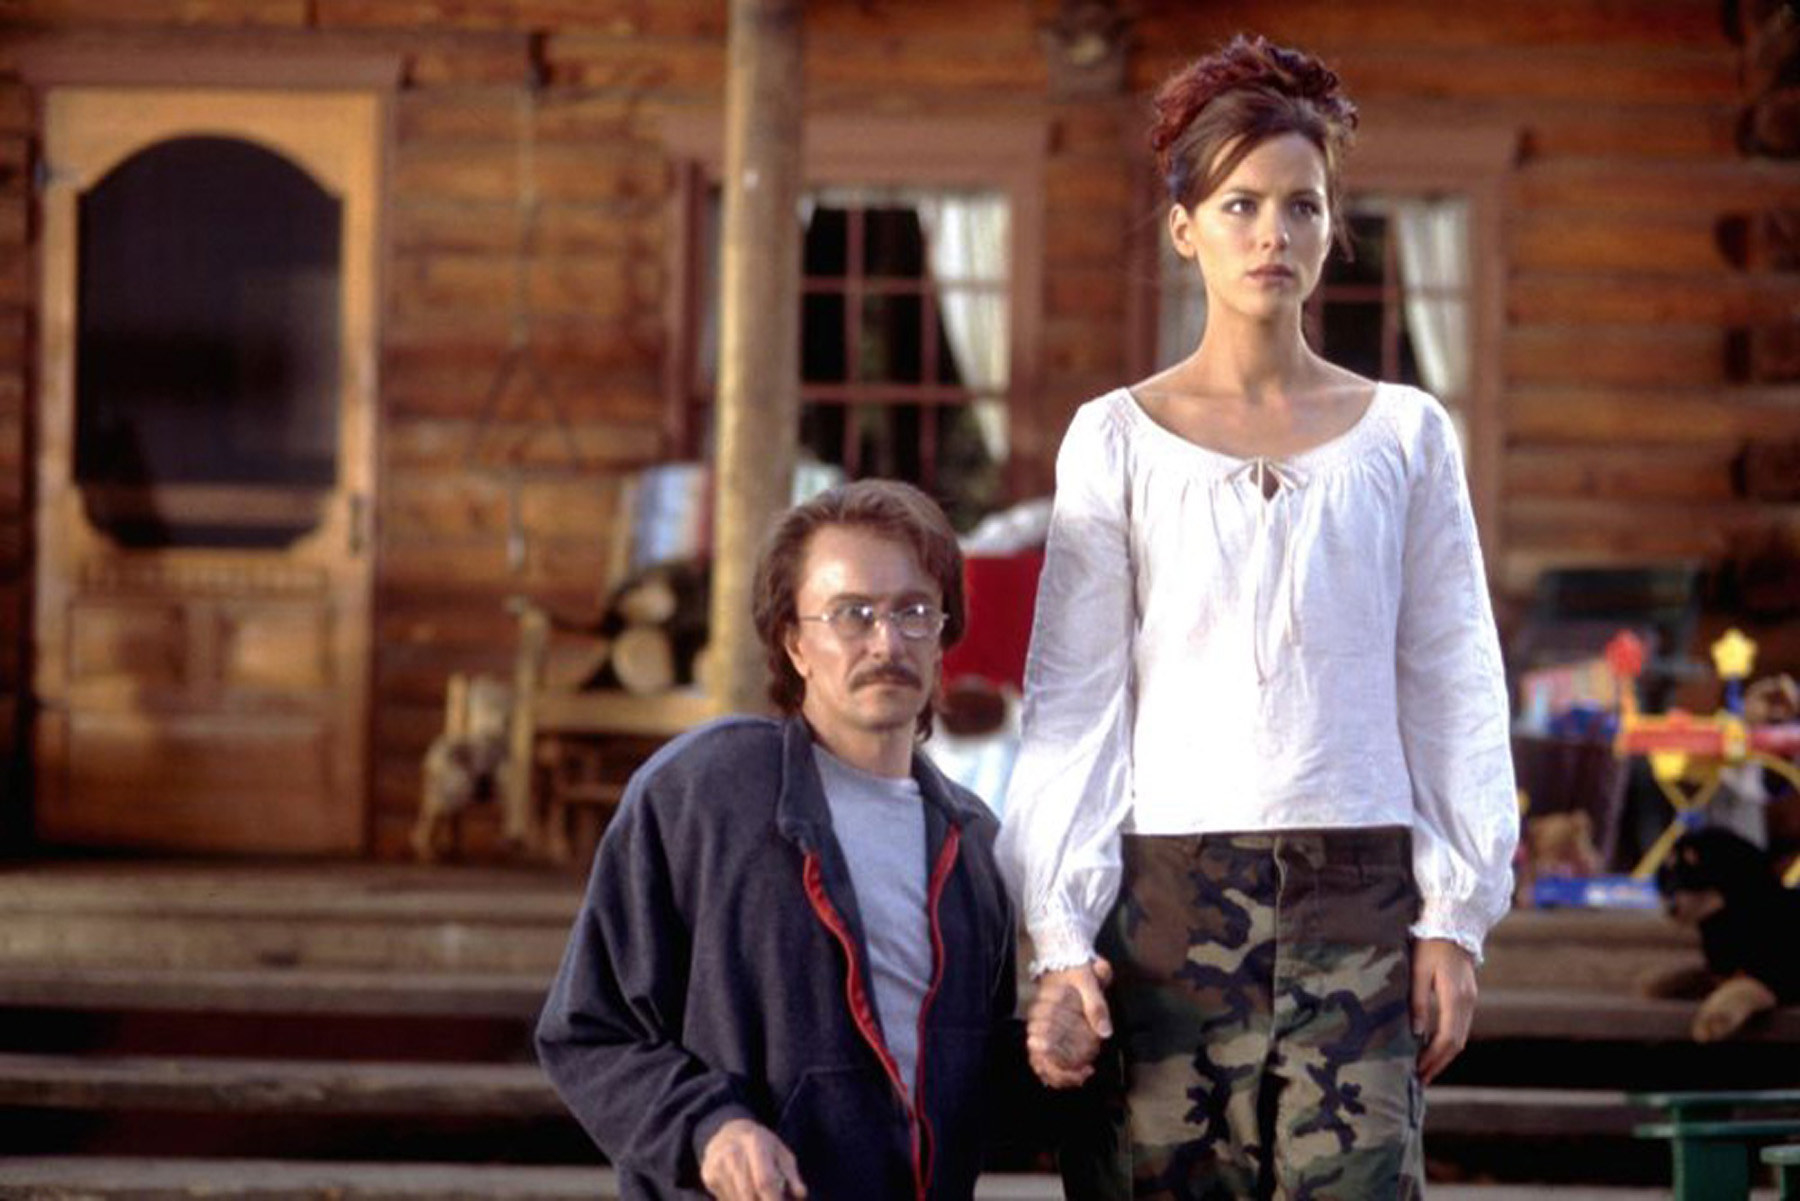 Gary Oldman holding hands with Kate Beckinsale in front of a house